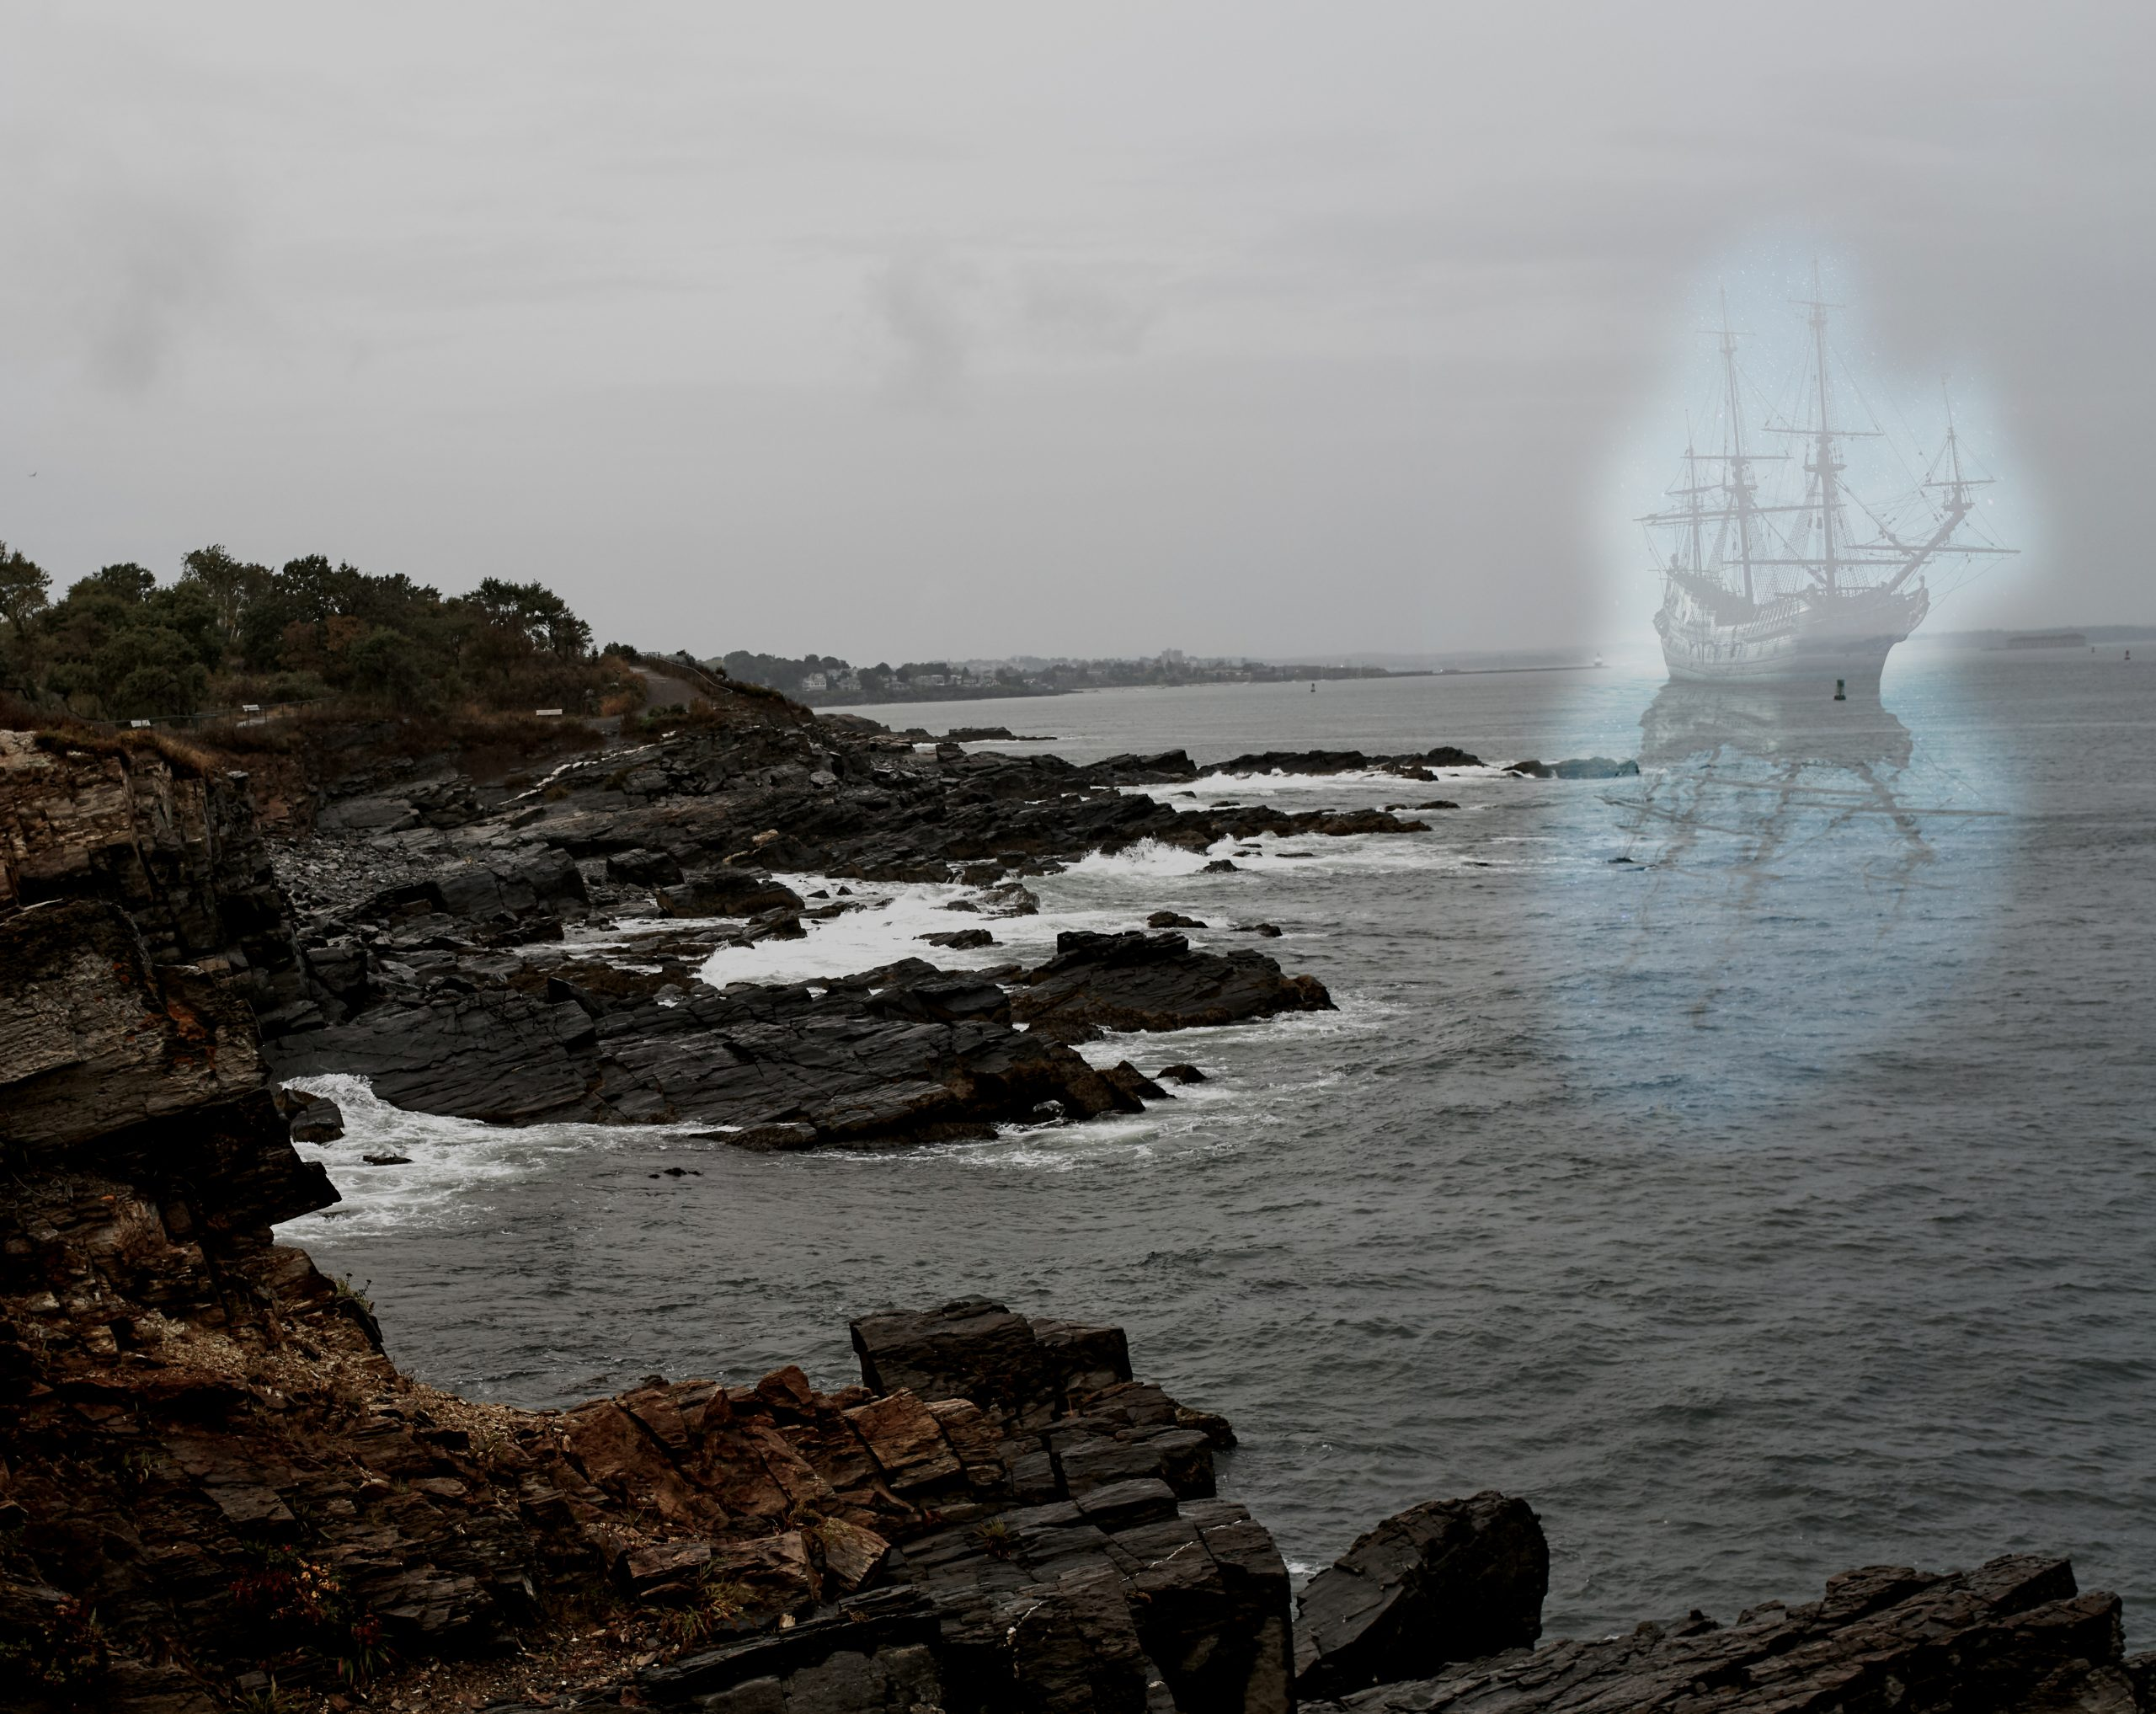 The Ghost Ship Dash out of Freeport, Maine.